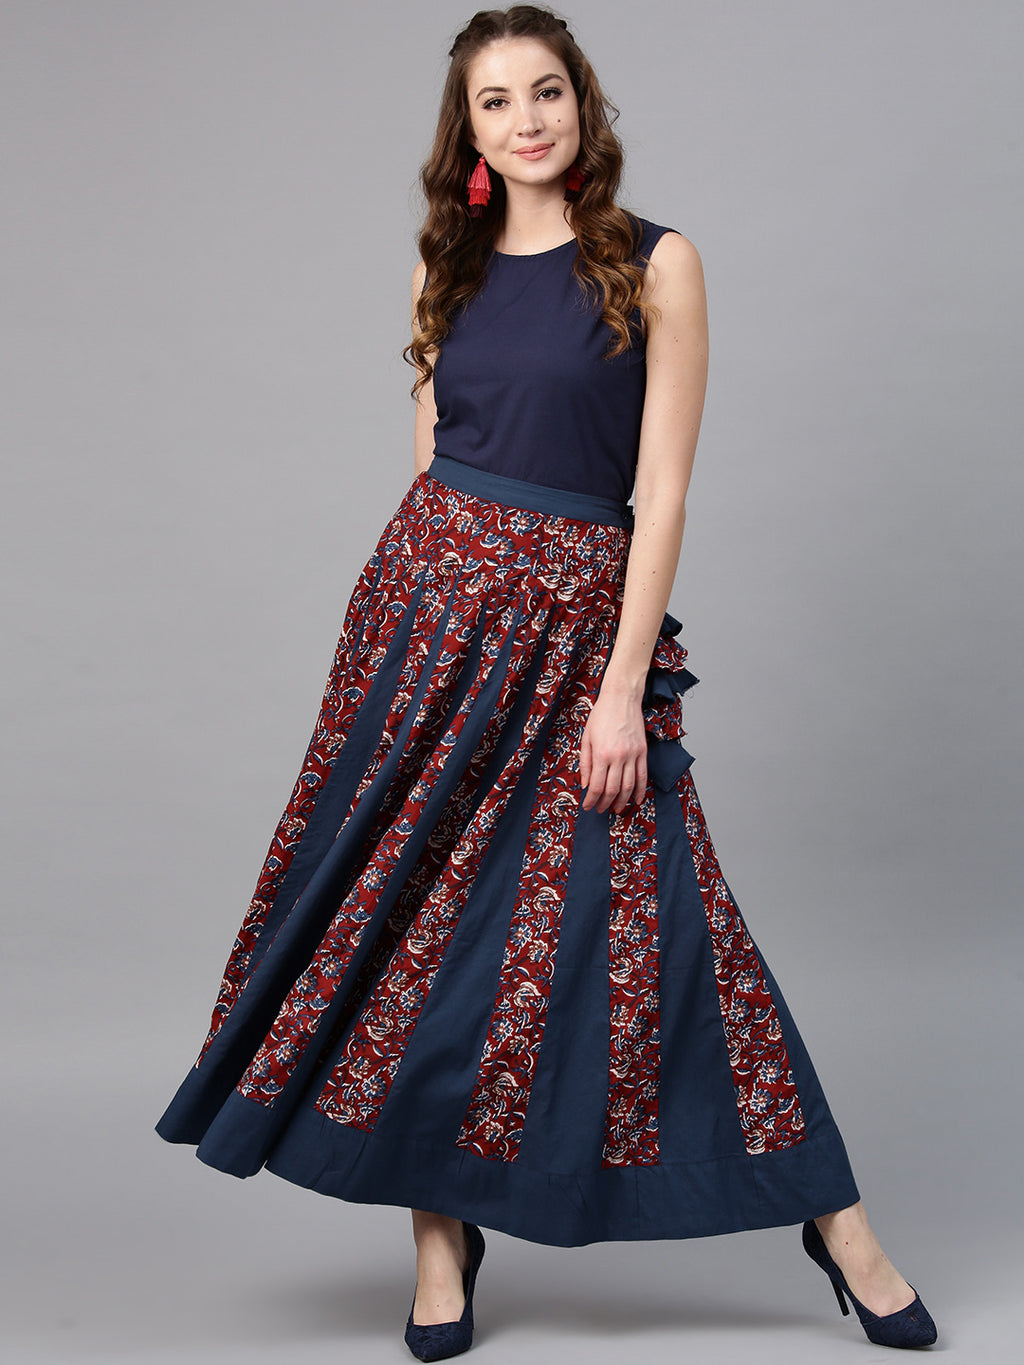 Blue & Burgundy Printed Flared Skirt | Znx4ever.com